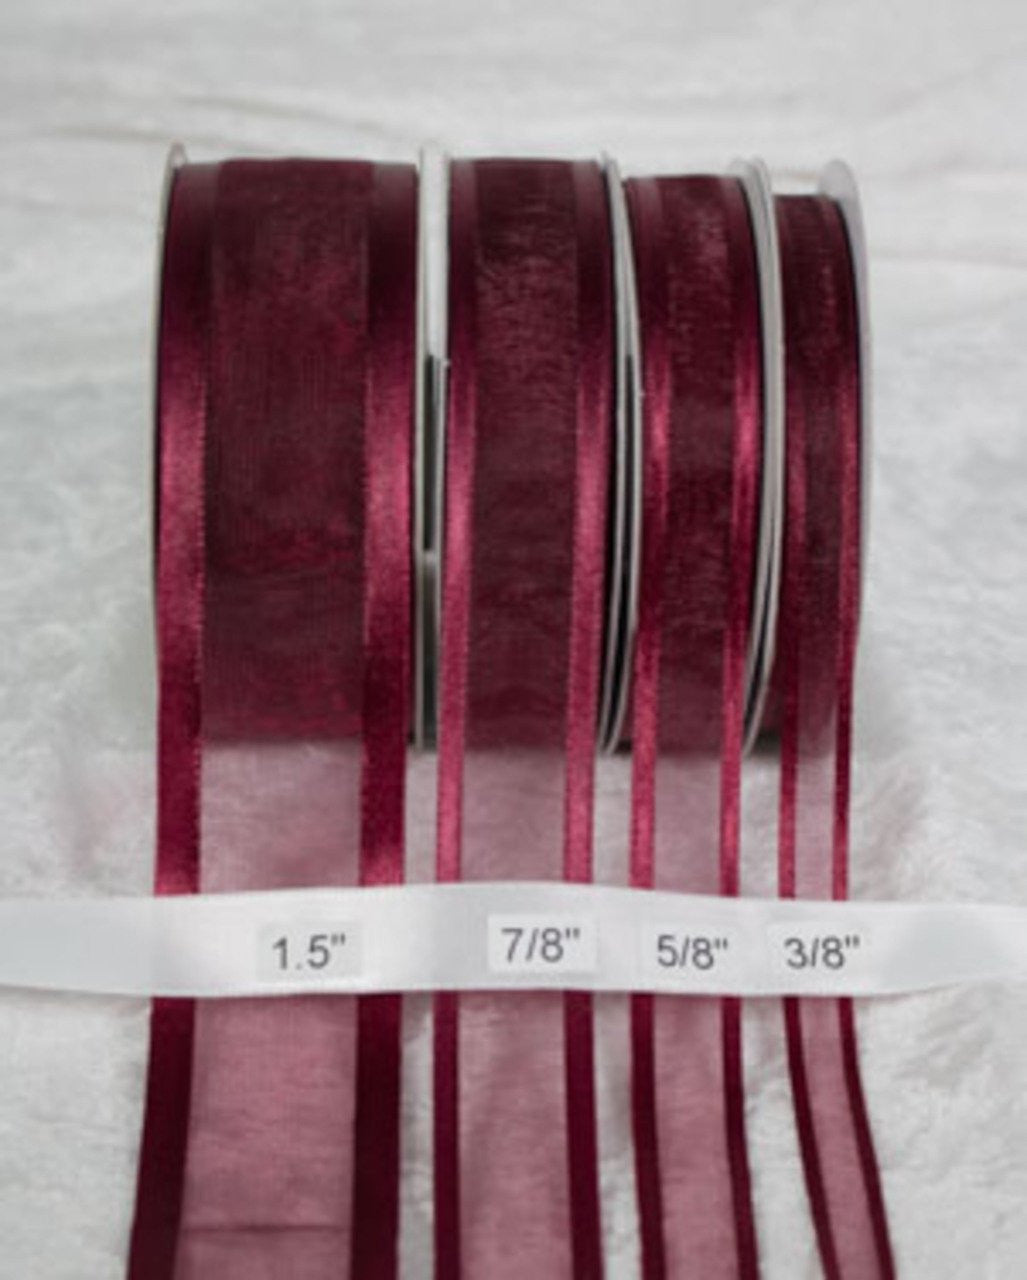 "25 yards-Burgundy w/ Satin Trim Ribbon (3/8"", 5/8"", 7/8"", 1.5"" )"